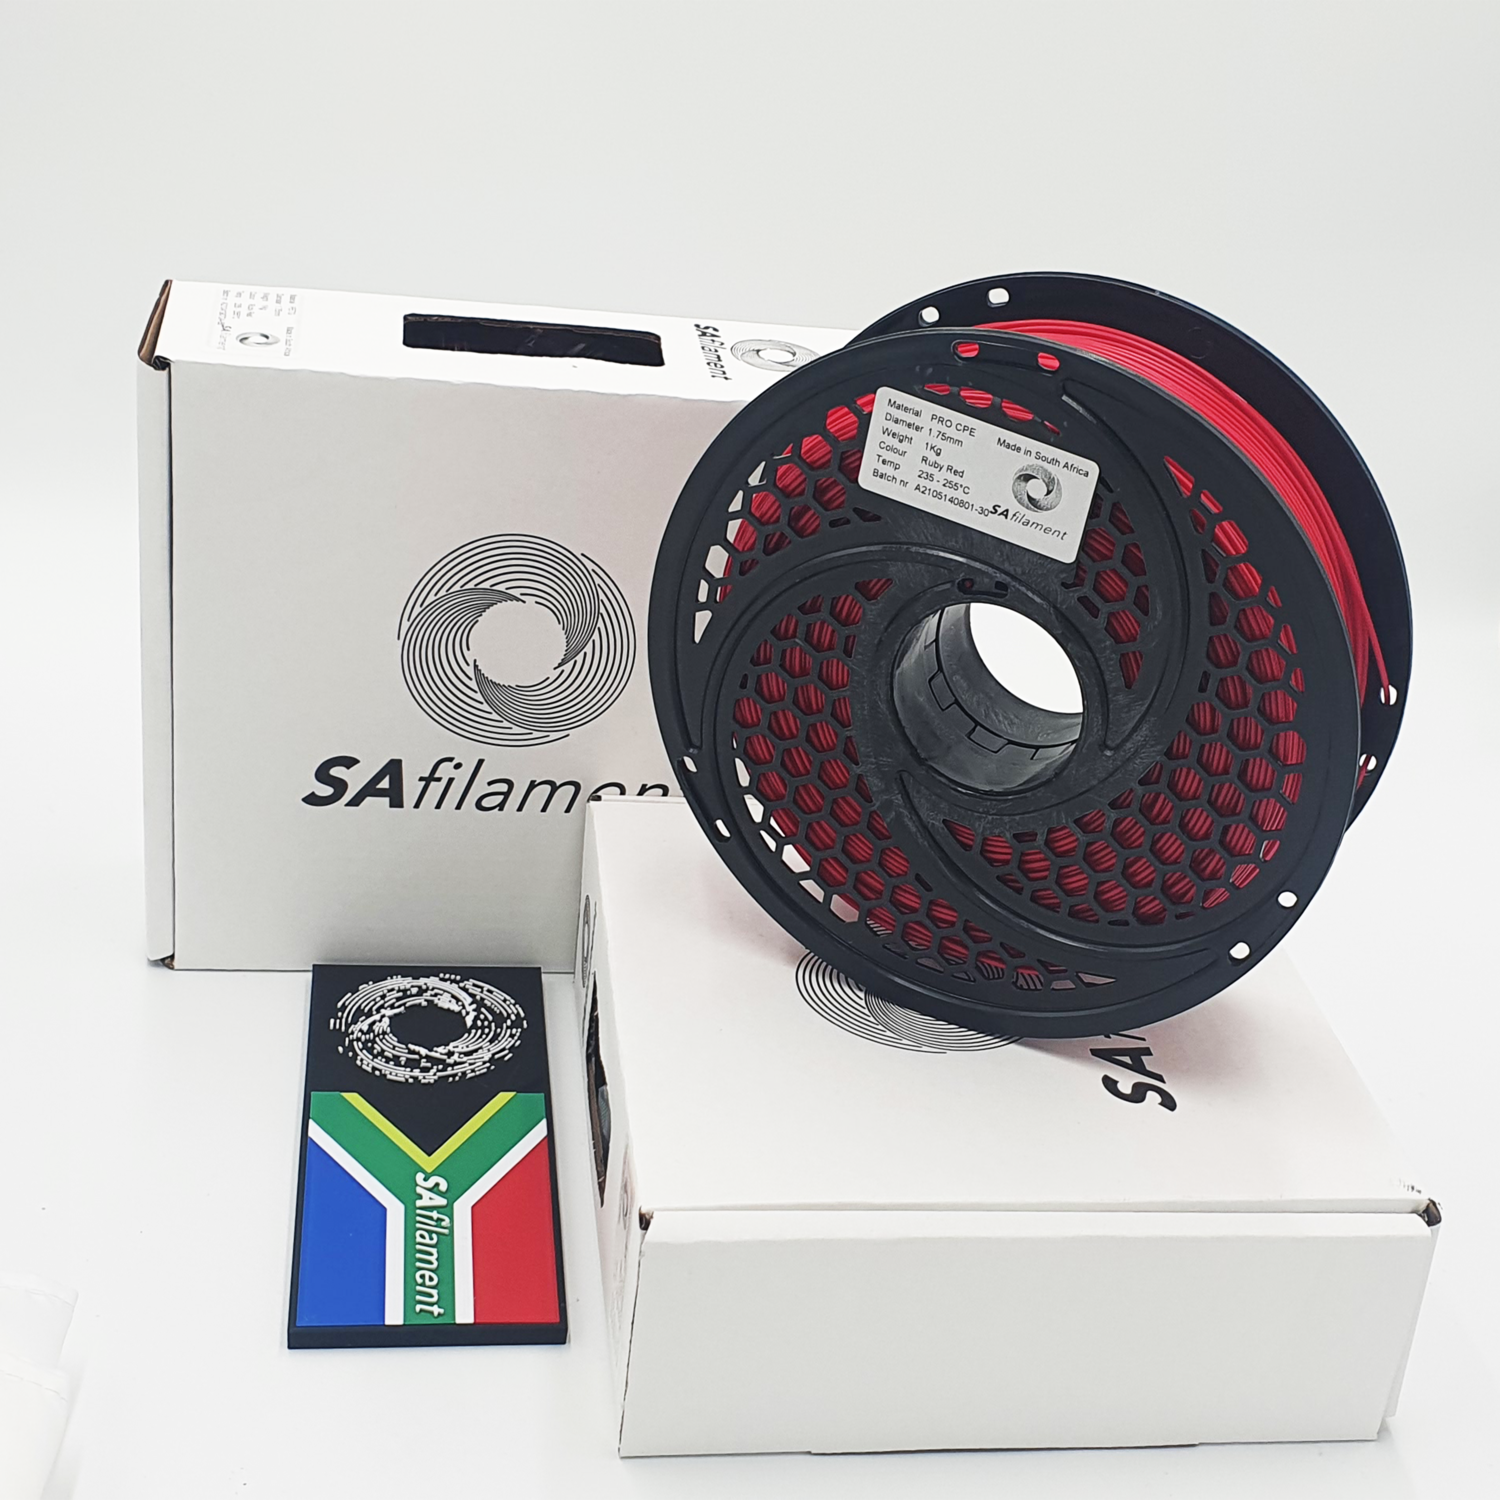 Red Pro CPE Filament, 1Kg, 1.75mm by SA Filament